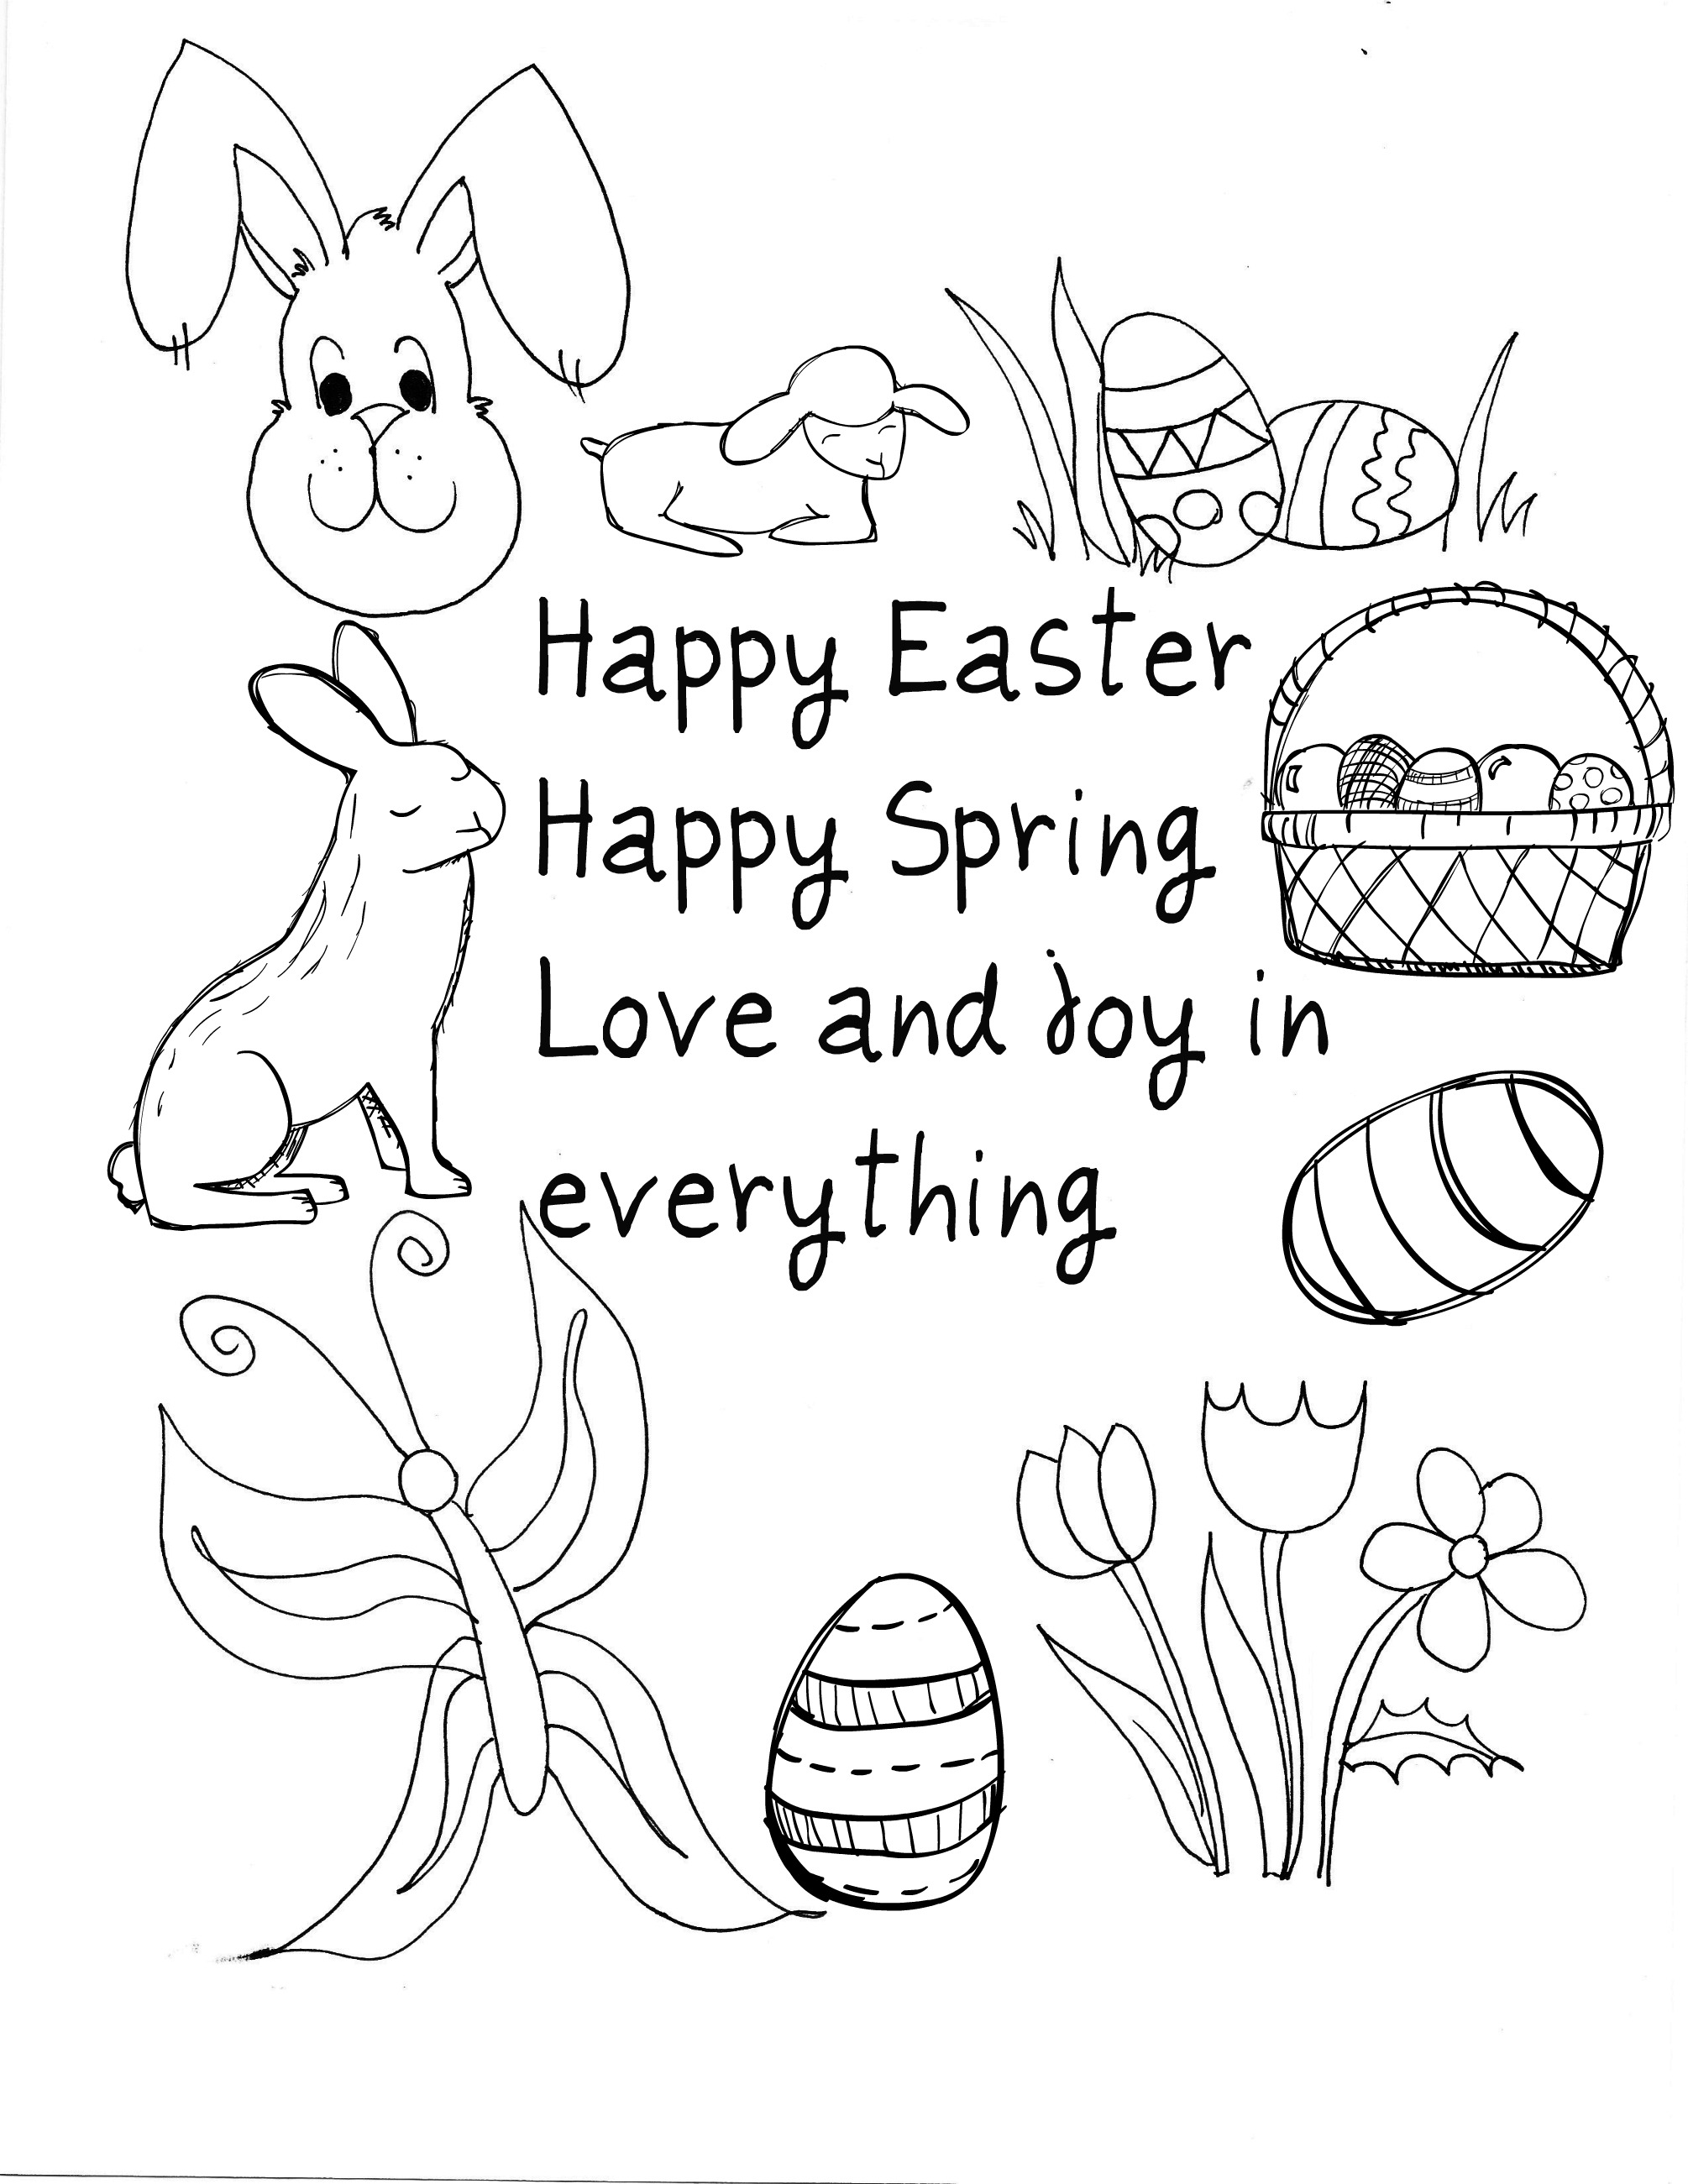 happy children coloring pages - photo#42